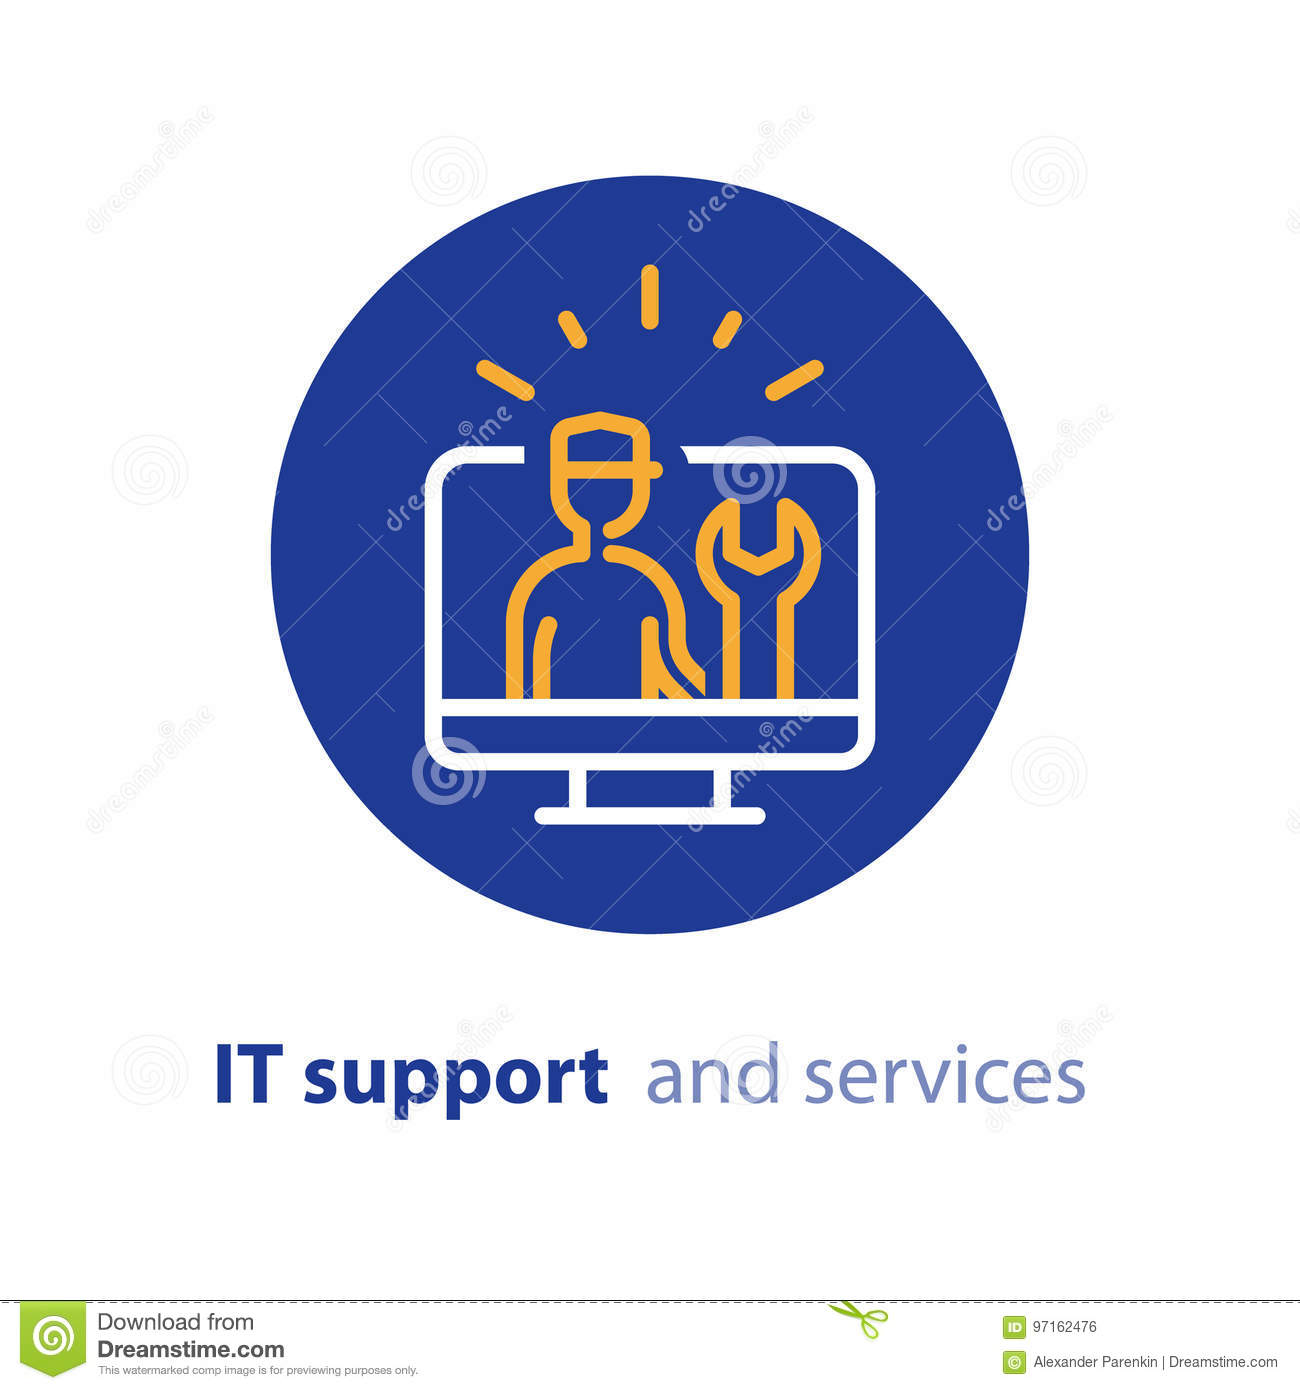 Download Computer Upgrade System Update Software Installation Repair Services IT Support Line